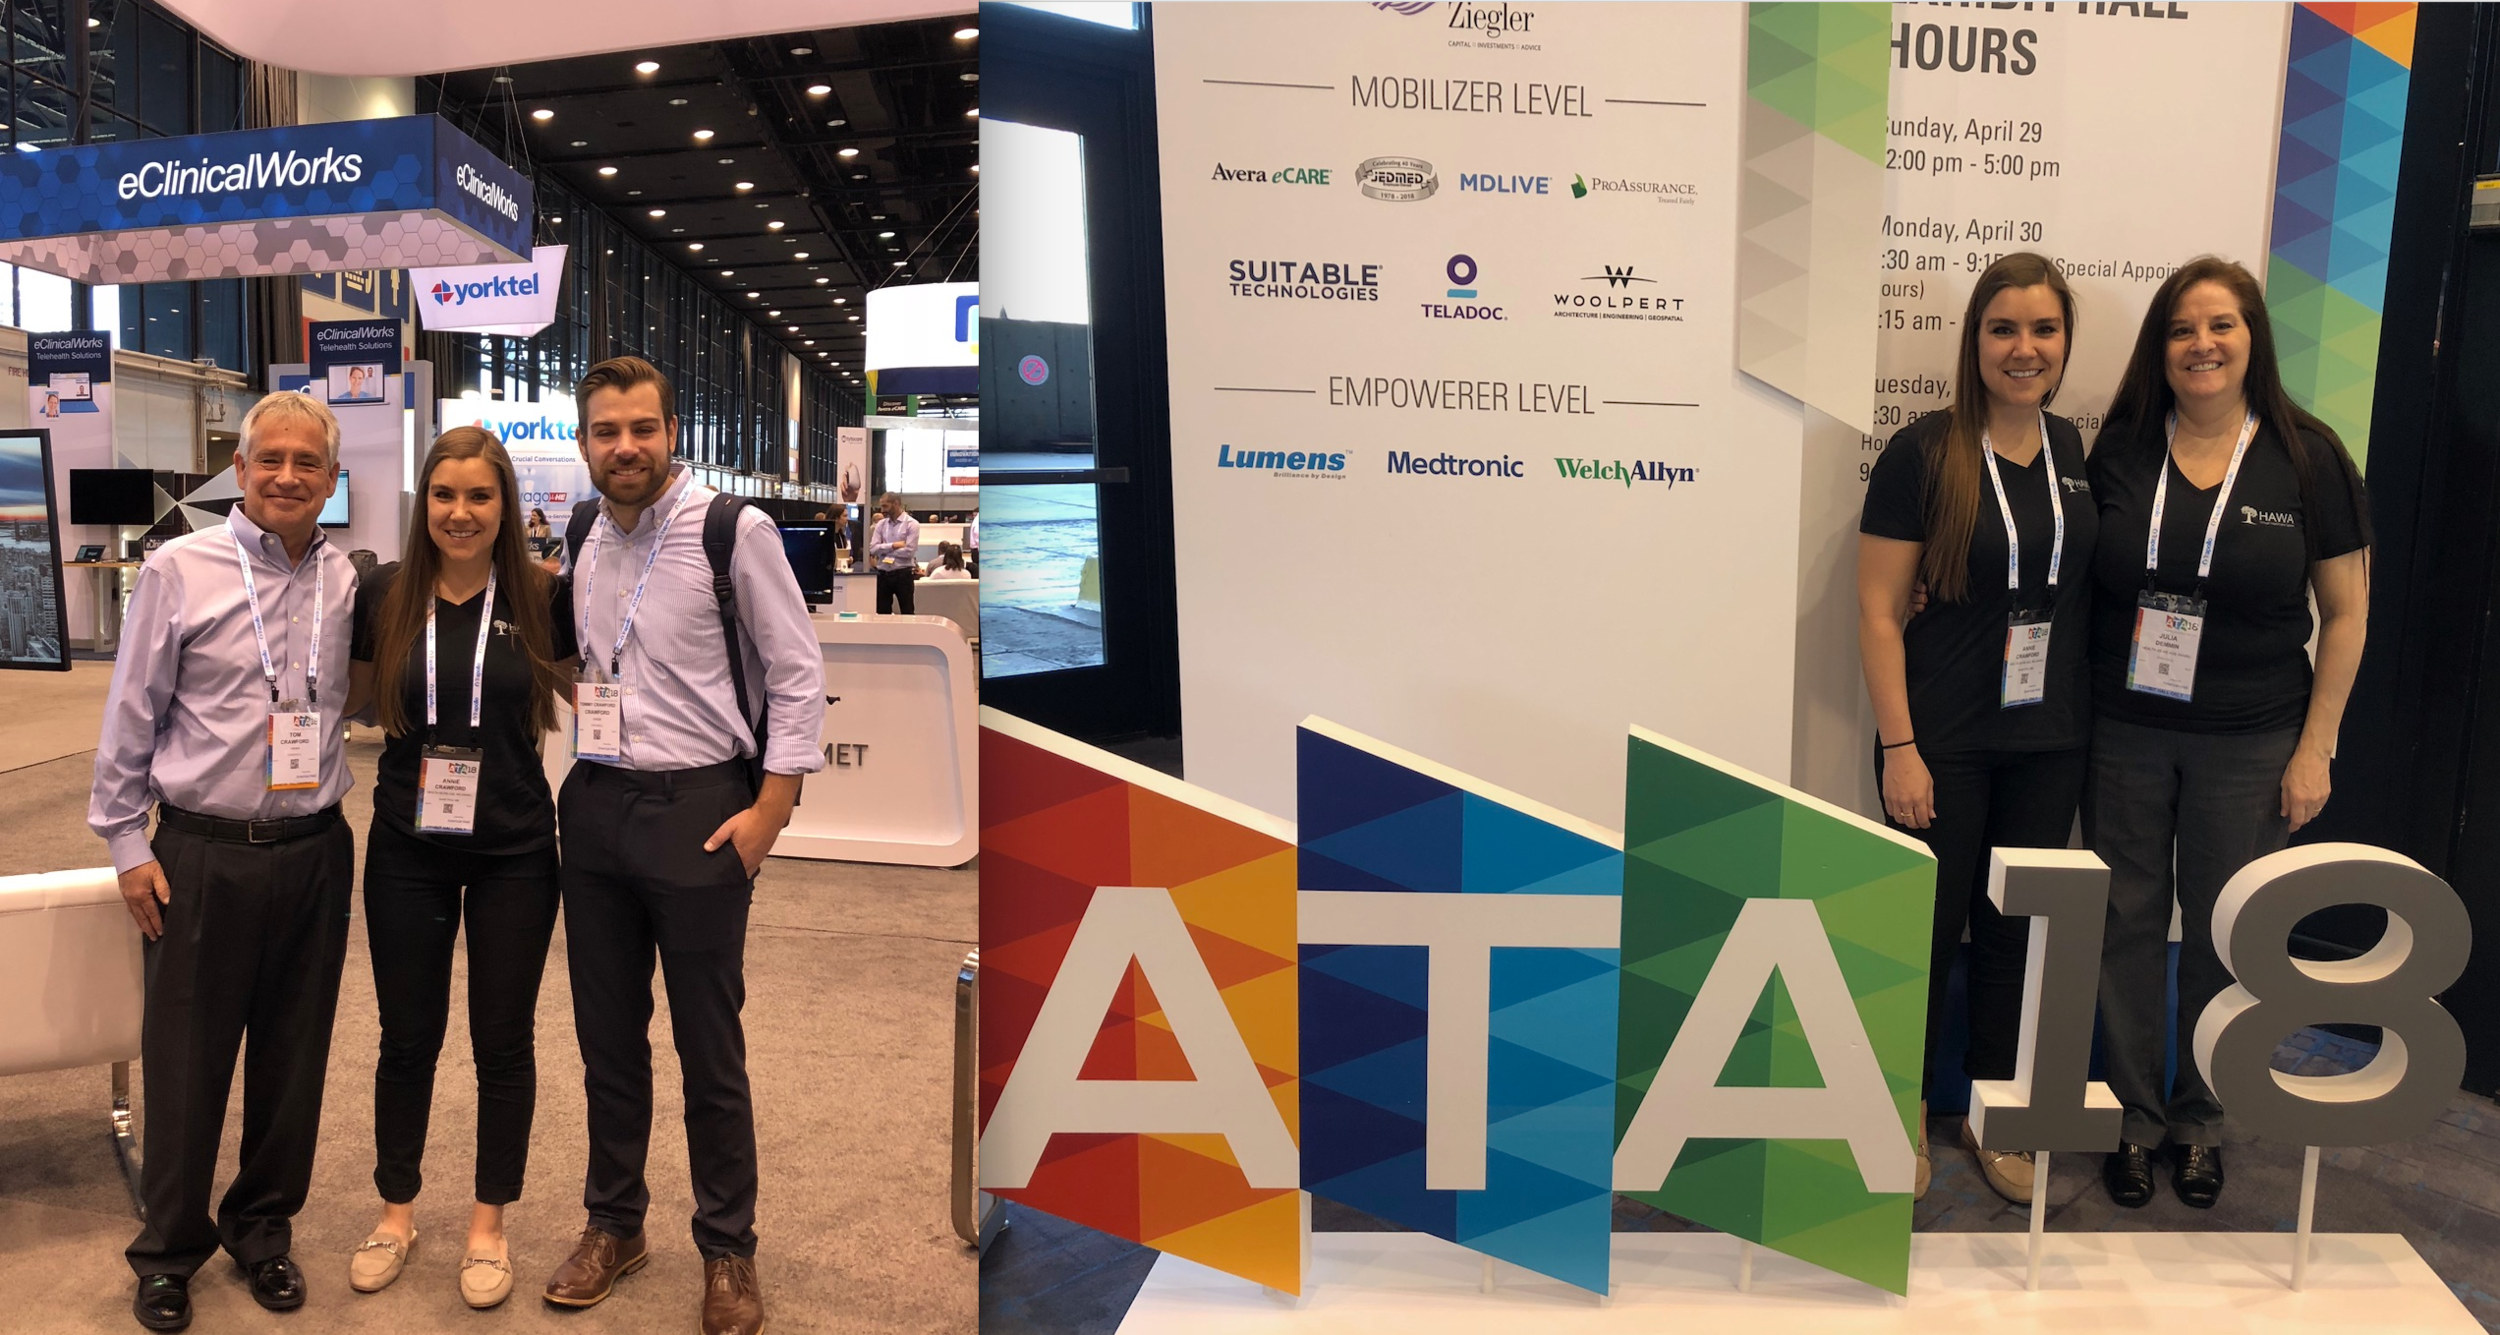 The HAWA Team was amazed to see how much the #ATA conference had grown over the last few years. Many industry leaders were networking, brainstorming and projecting the future of #Telehealth!